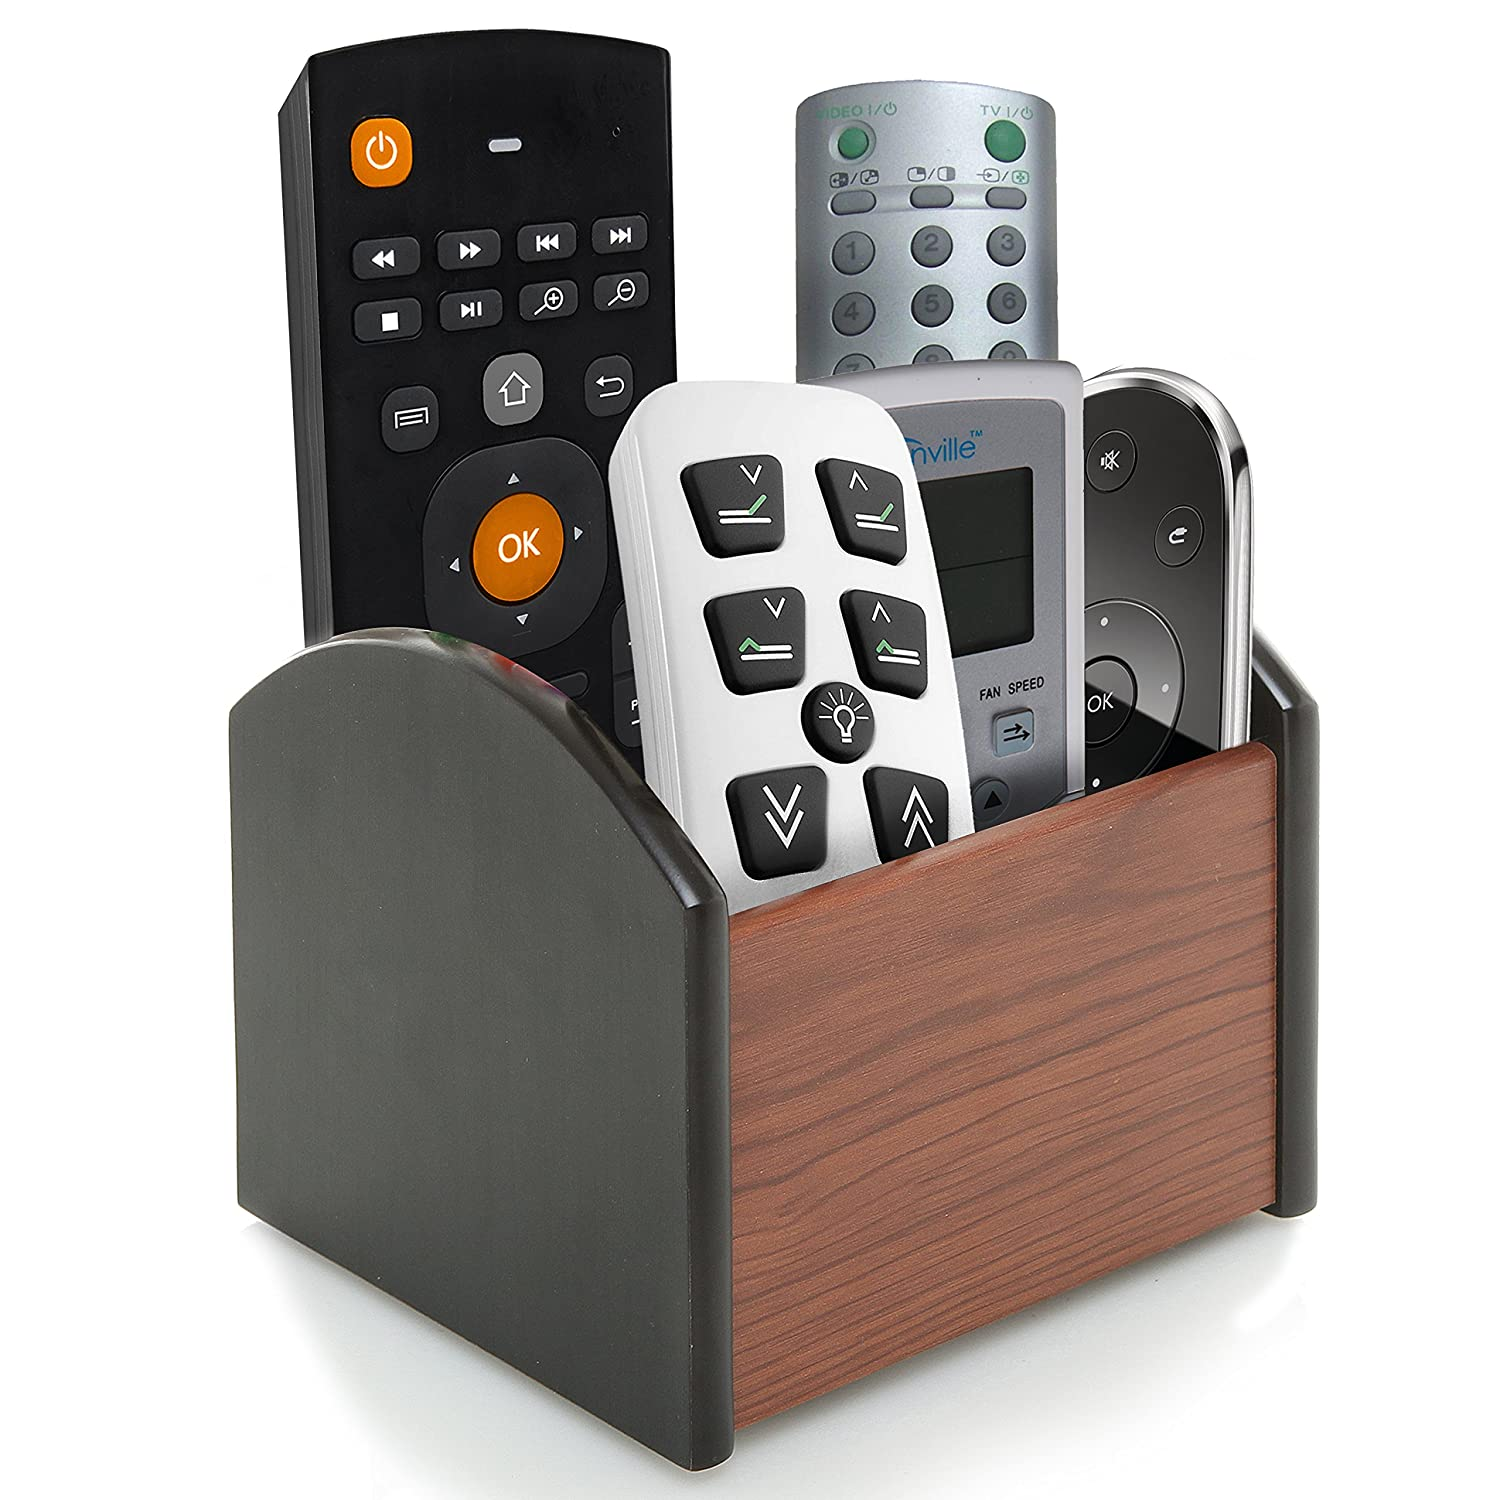 Remote Control Holder For Coffee Table Amazoncom Revolving Wooden 4 Compartment Desktop Office